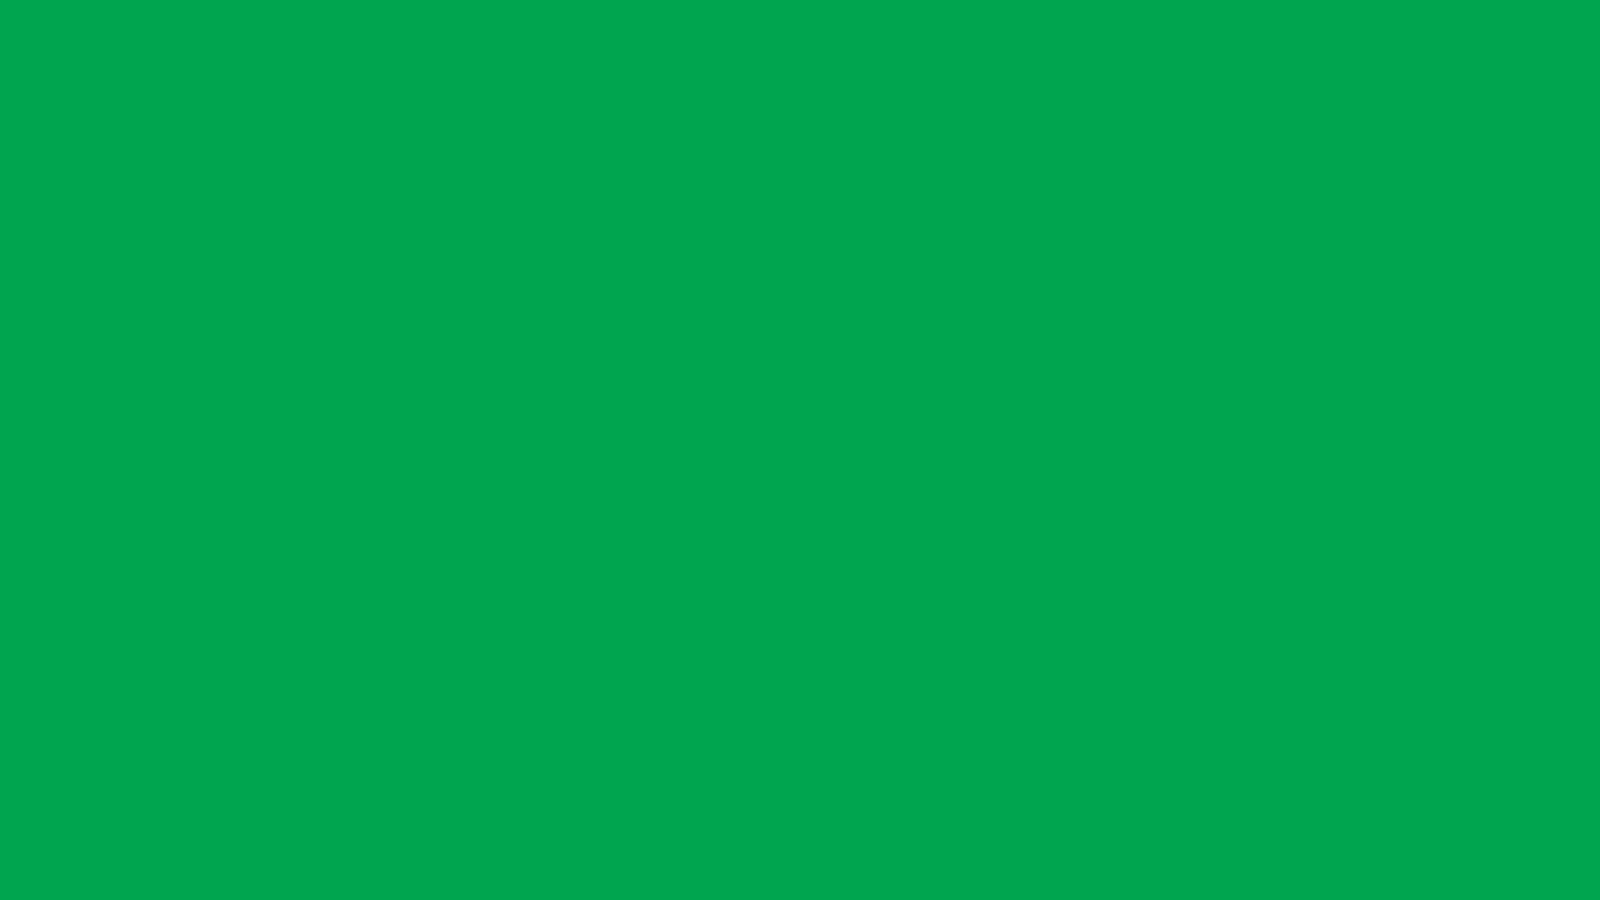 1600x900 Green Pigment Solid Color Background